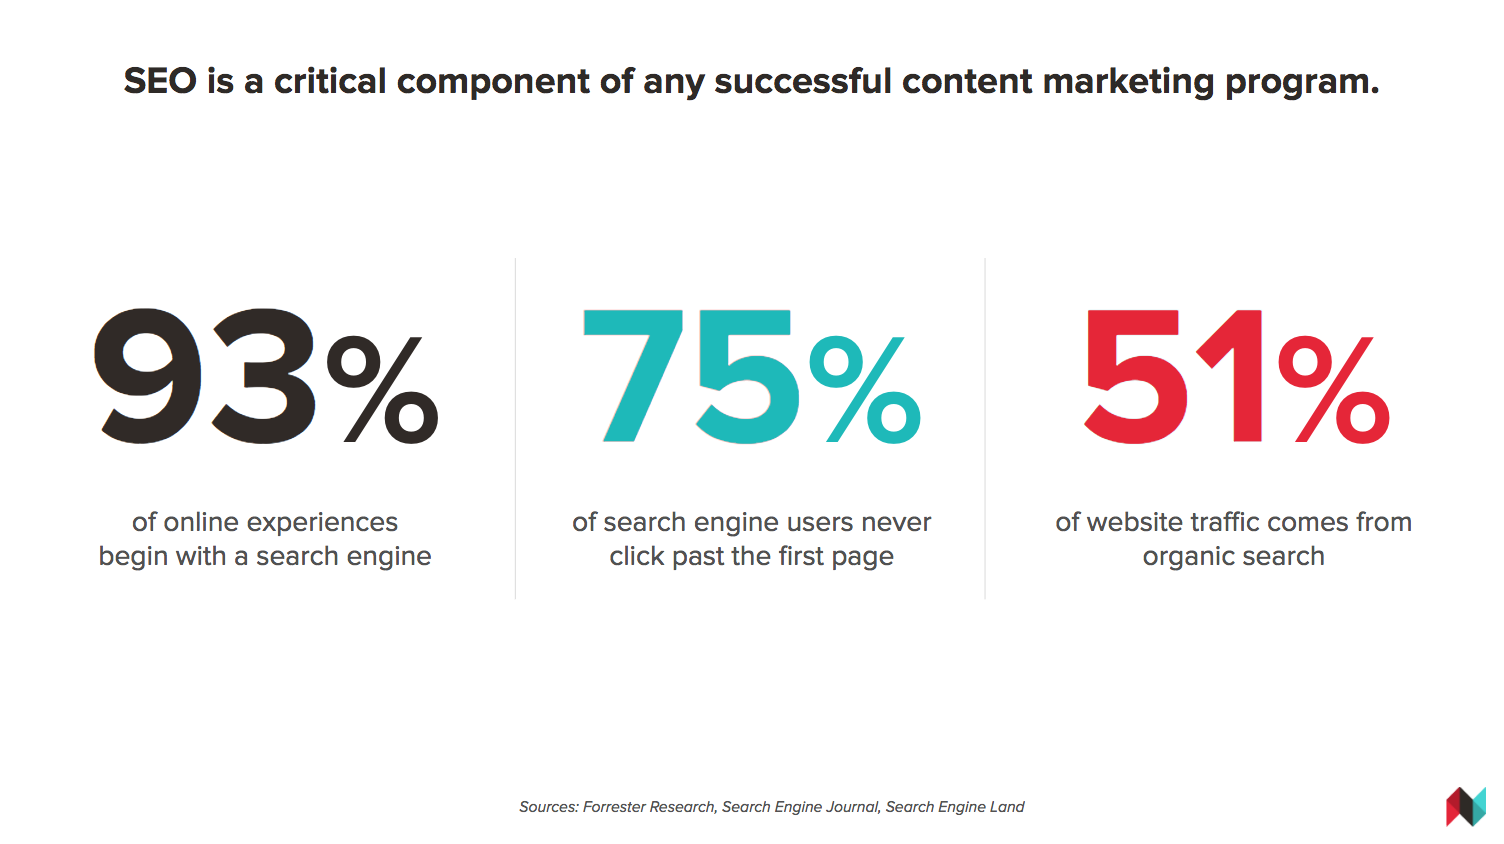 SEO_content marketing_stats.png